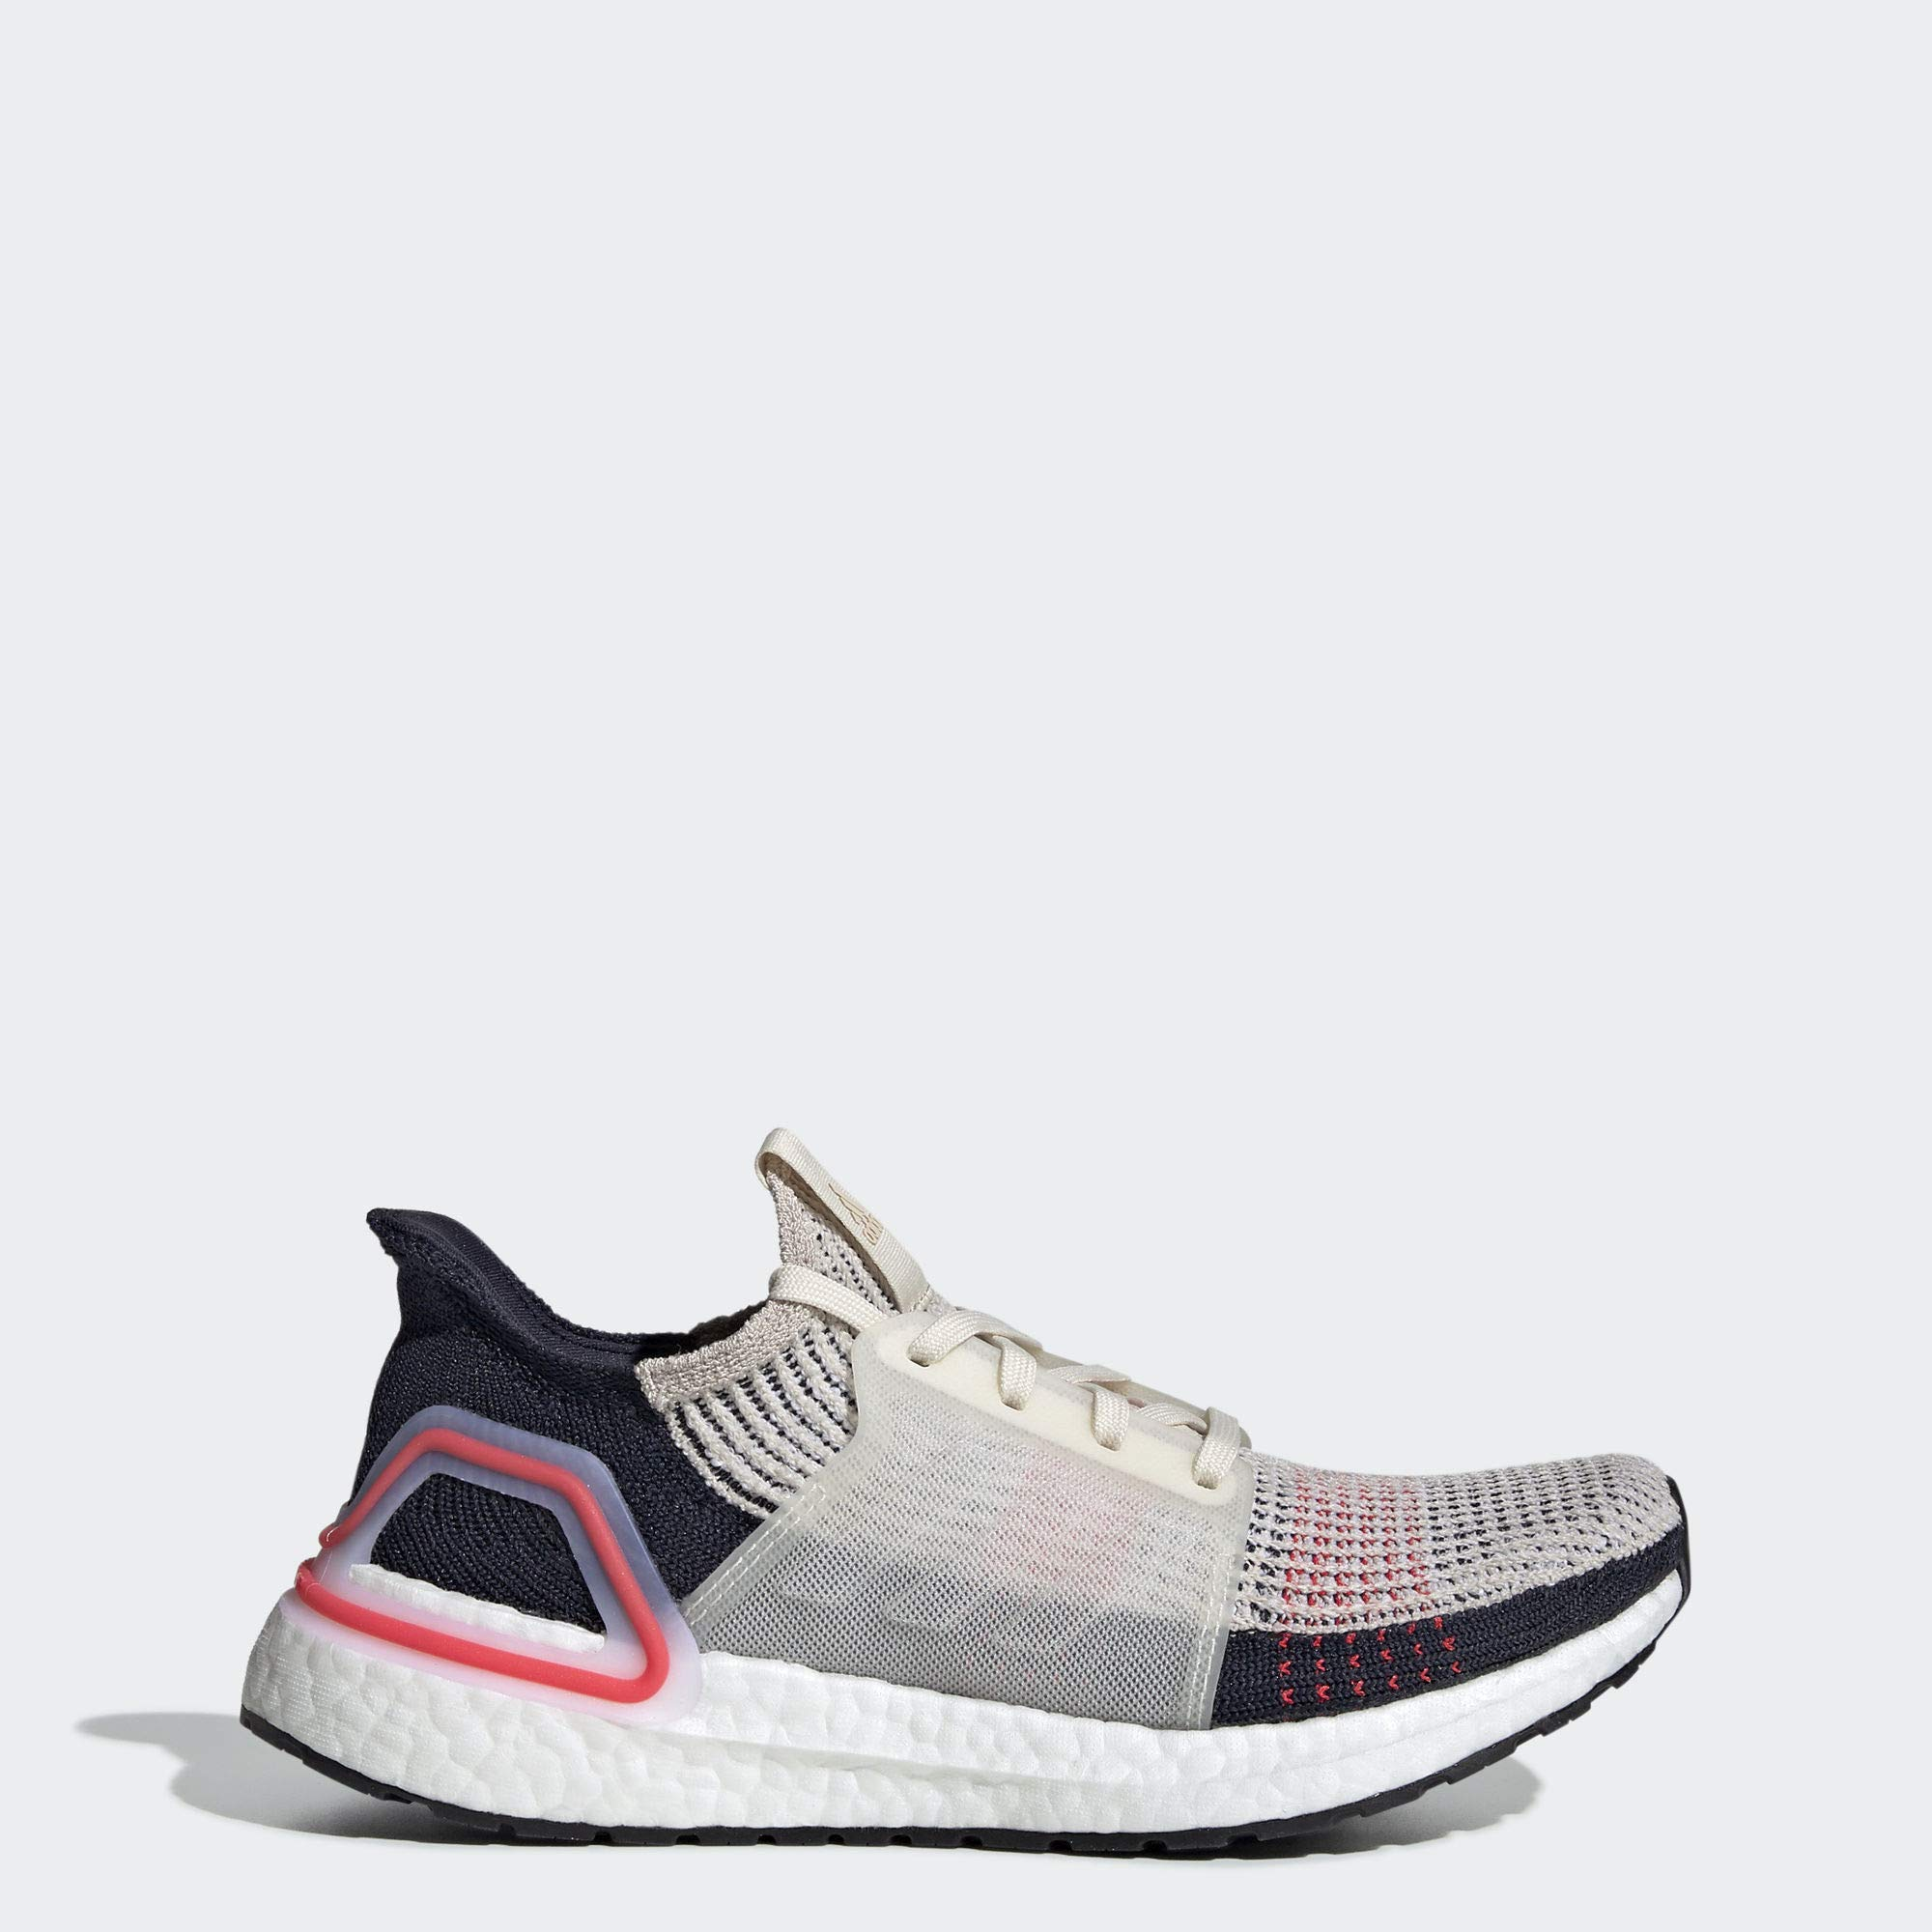 adidas Women's Ultraboost 19, Clear Brown/White/Legend Ink, 8.5 M US by adidas